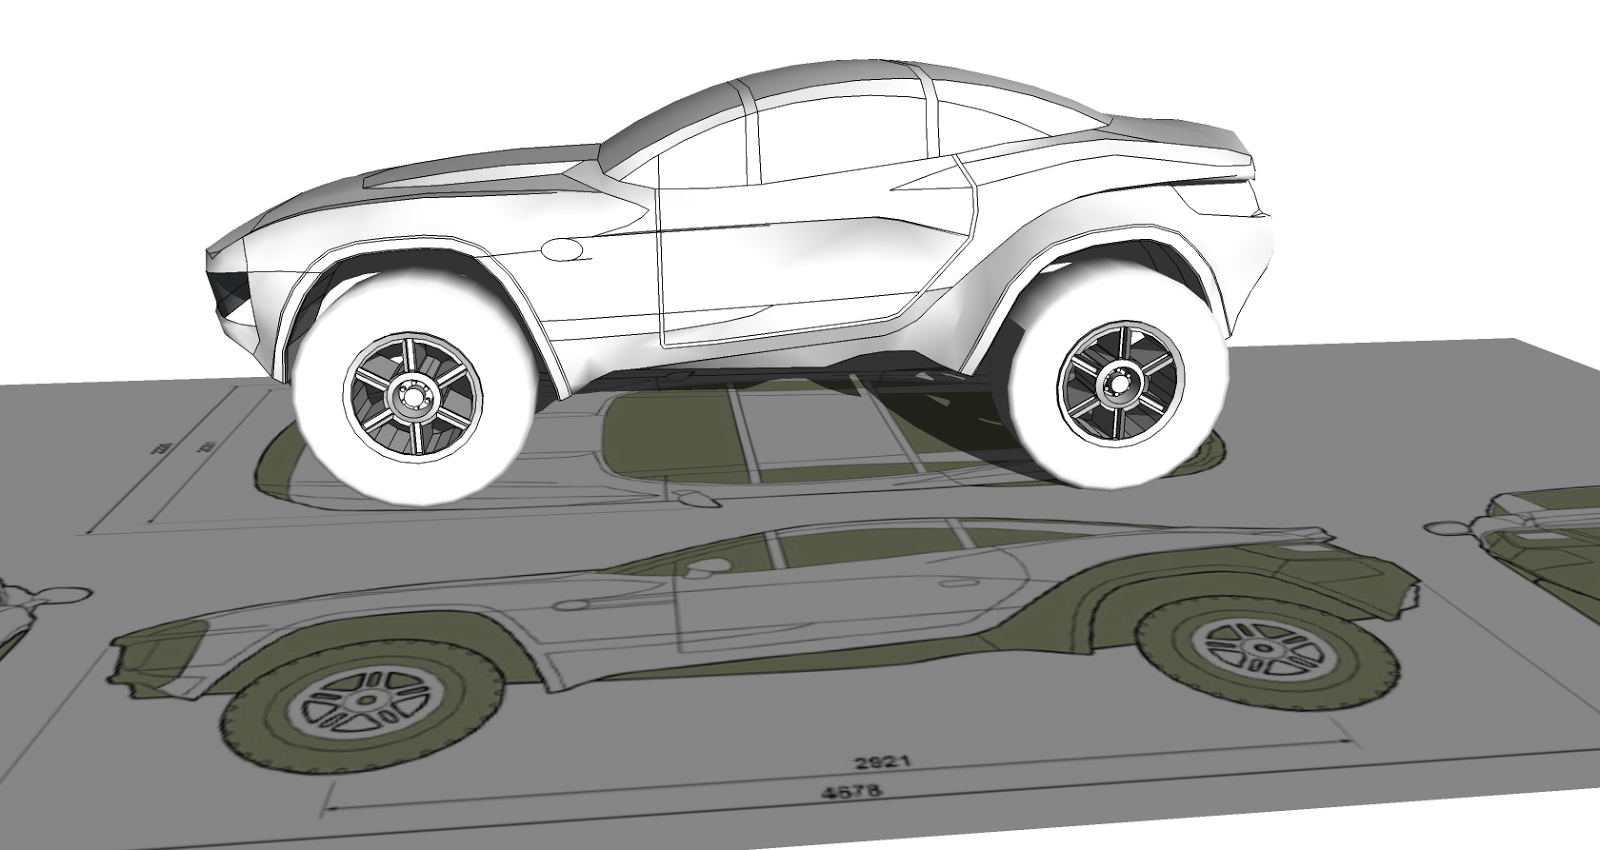 Basic design of a car - Kinda Crappy Right Now But I Think I Have The Basic Body Shape Down